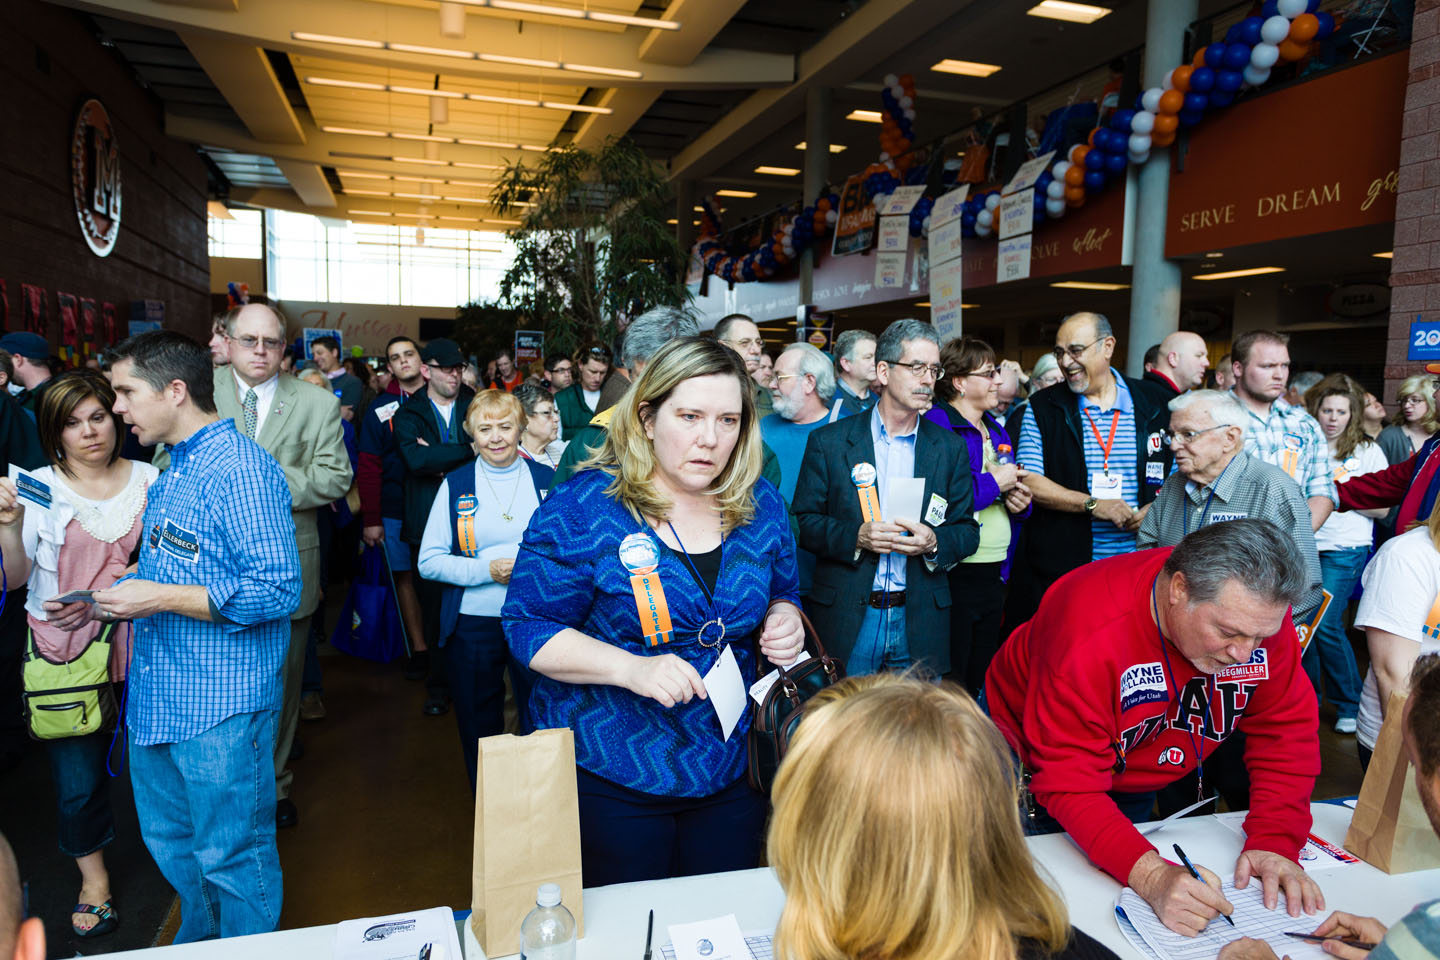 Conventioneers line up to cast their ballots for Salt Lake County Mayor